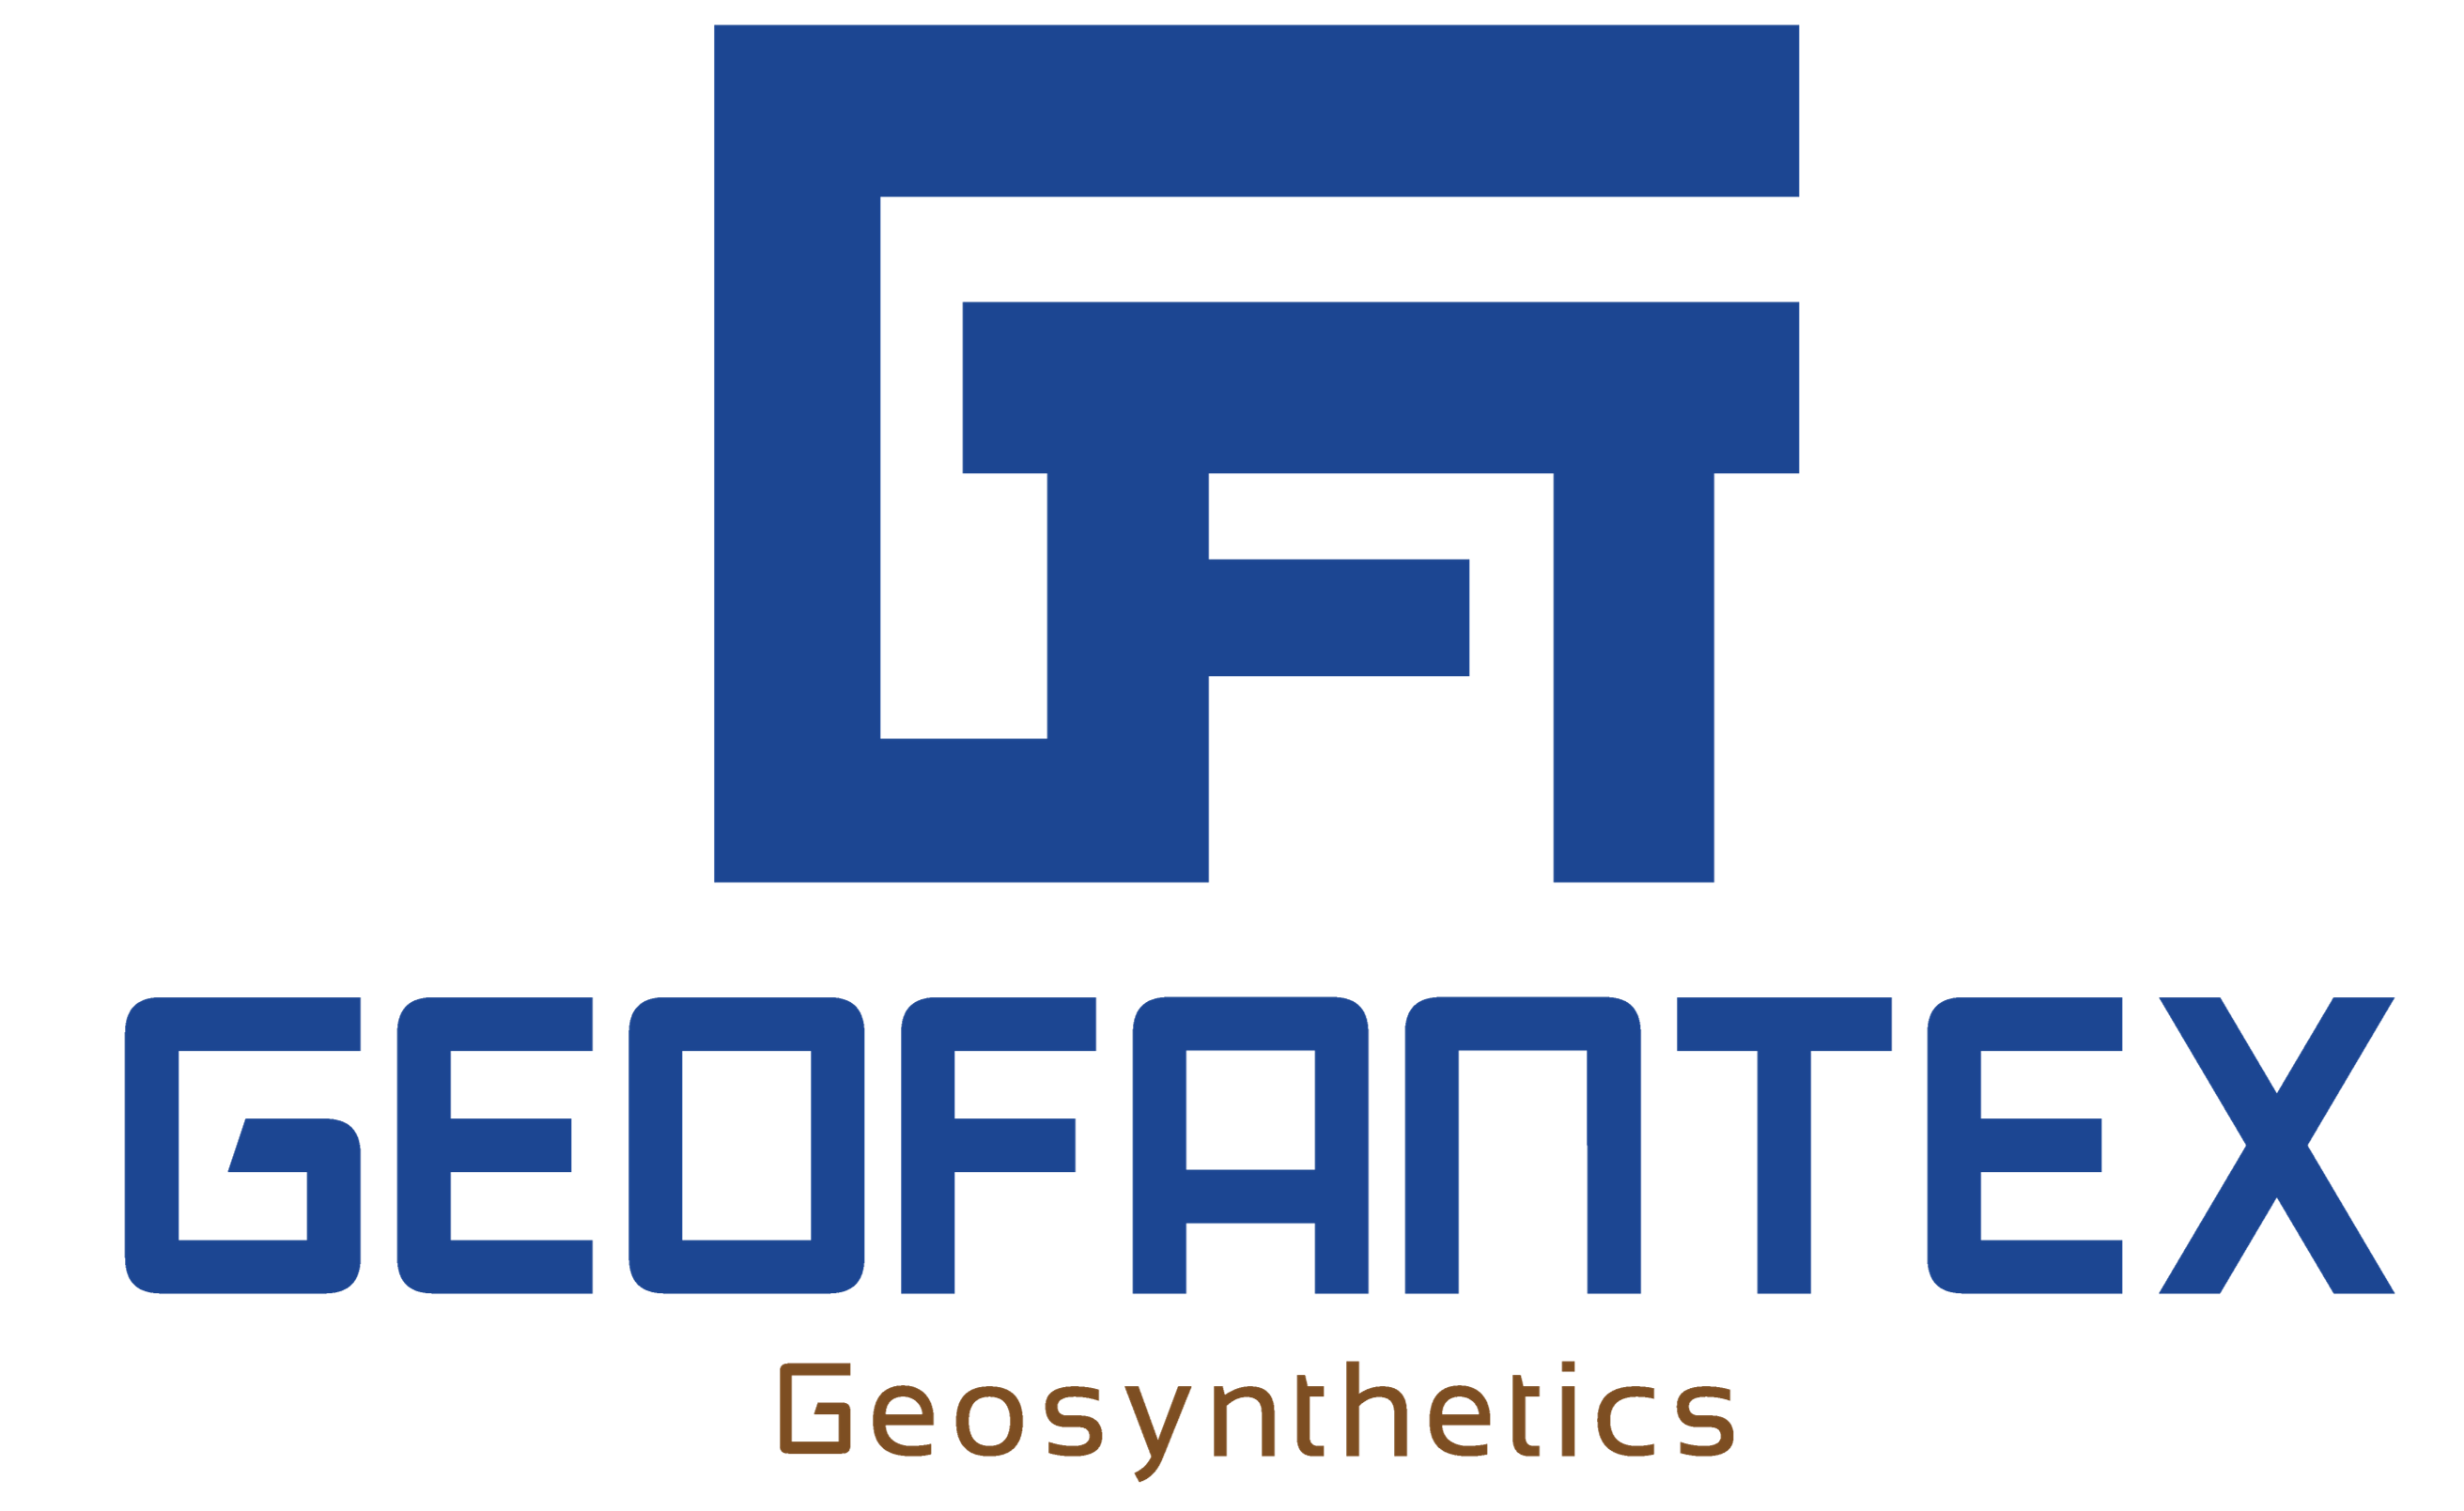 Geossintéticos Co. GeofanTex, Ltd.